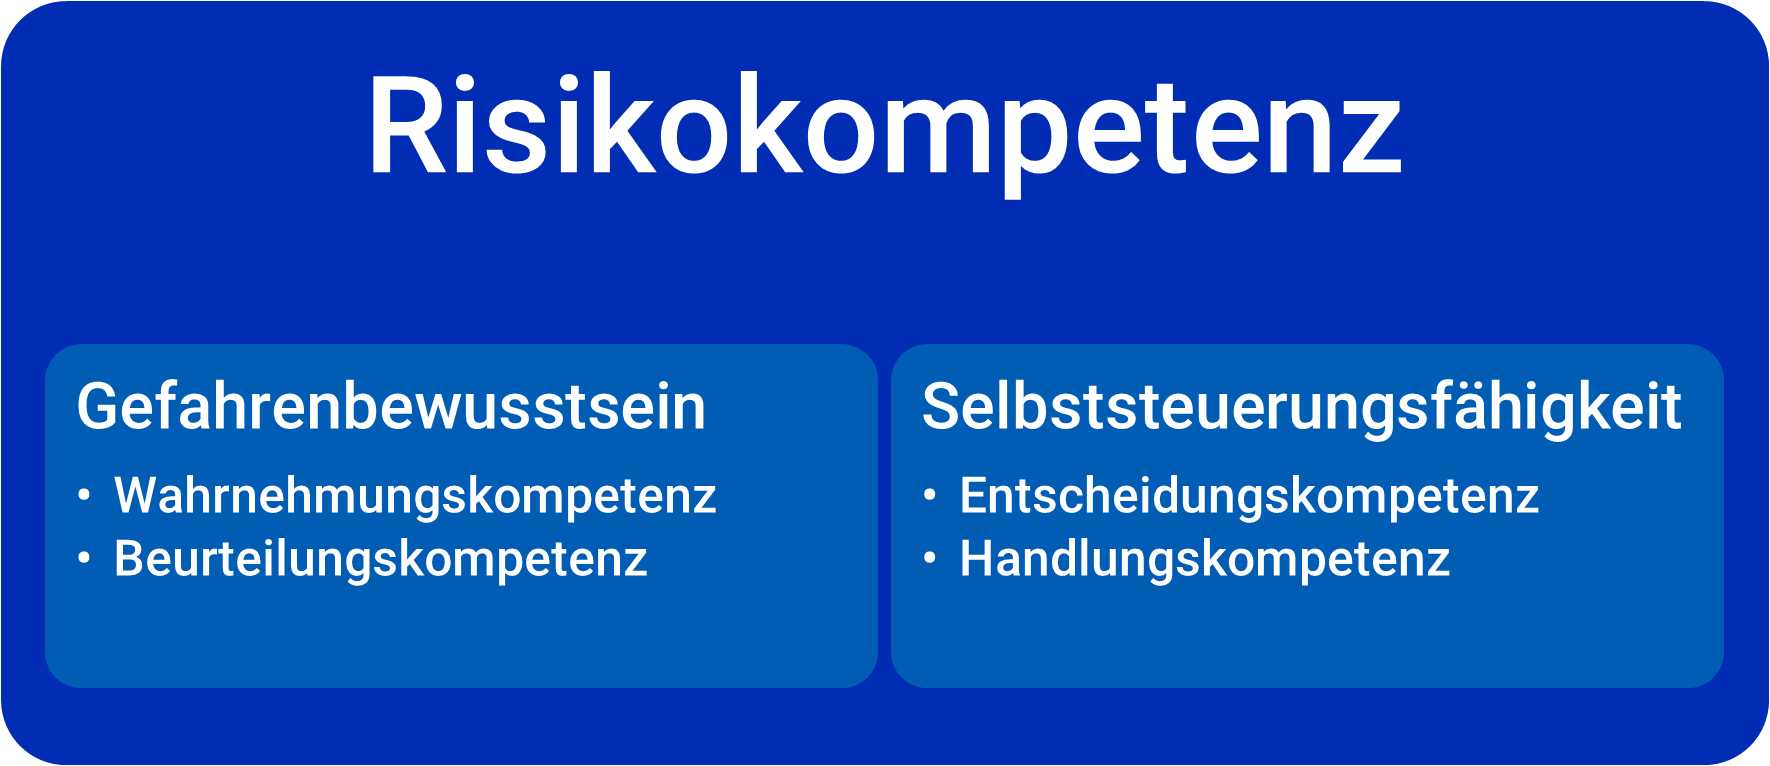 Risikokompetenz Definition